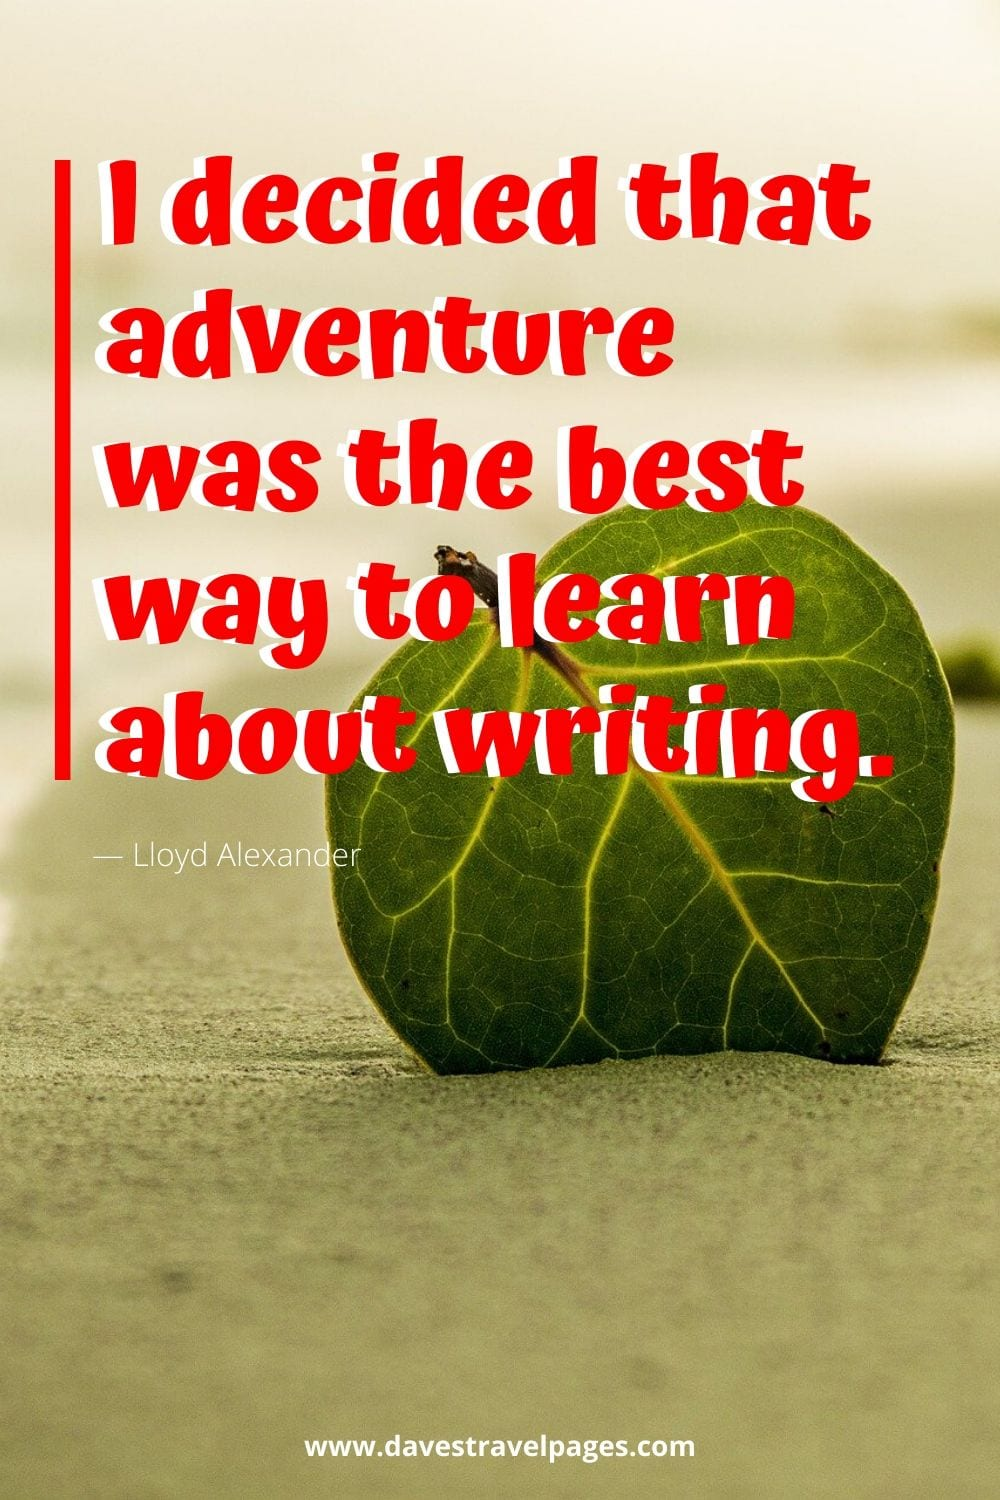 "Famous quotes about travel and adventure - I decided that adventure was the best way to learn about writing.""― Lloyd Alexander"